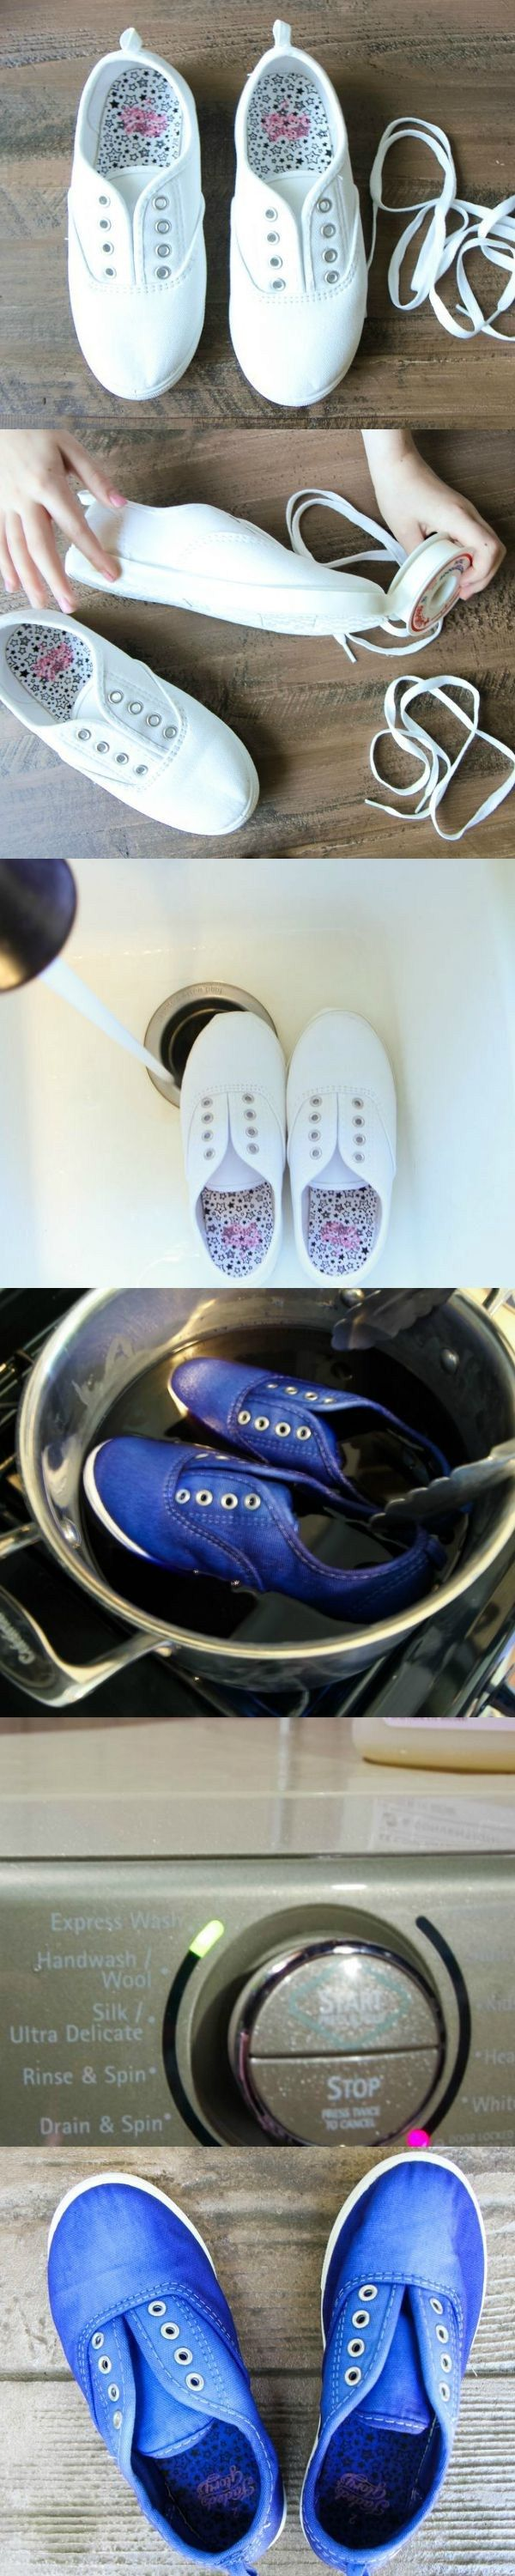 How to DIY Dye Canvas Shoes with Rit Dye from MomAdvice.com